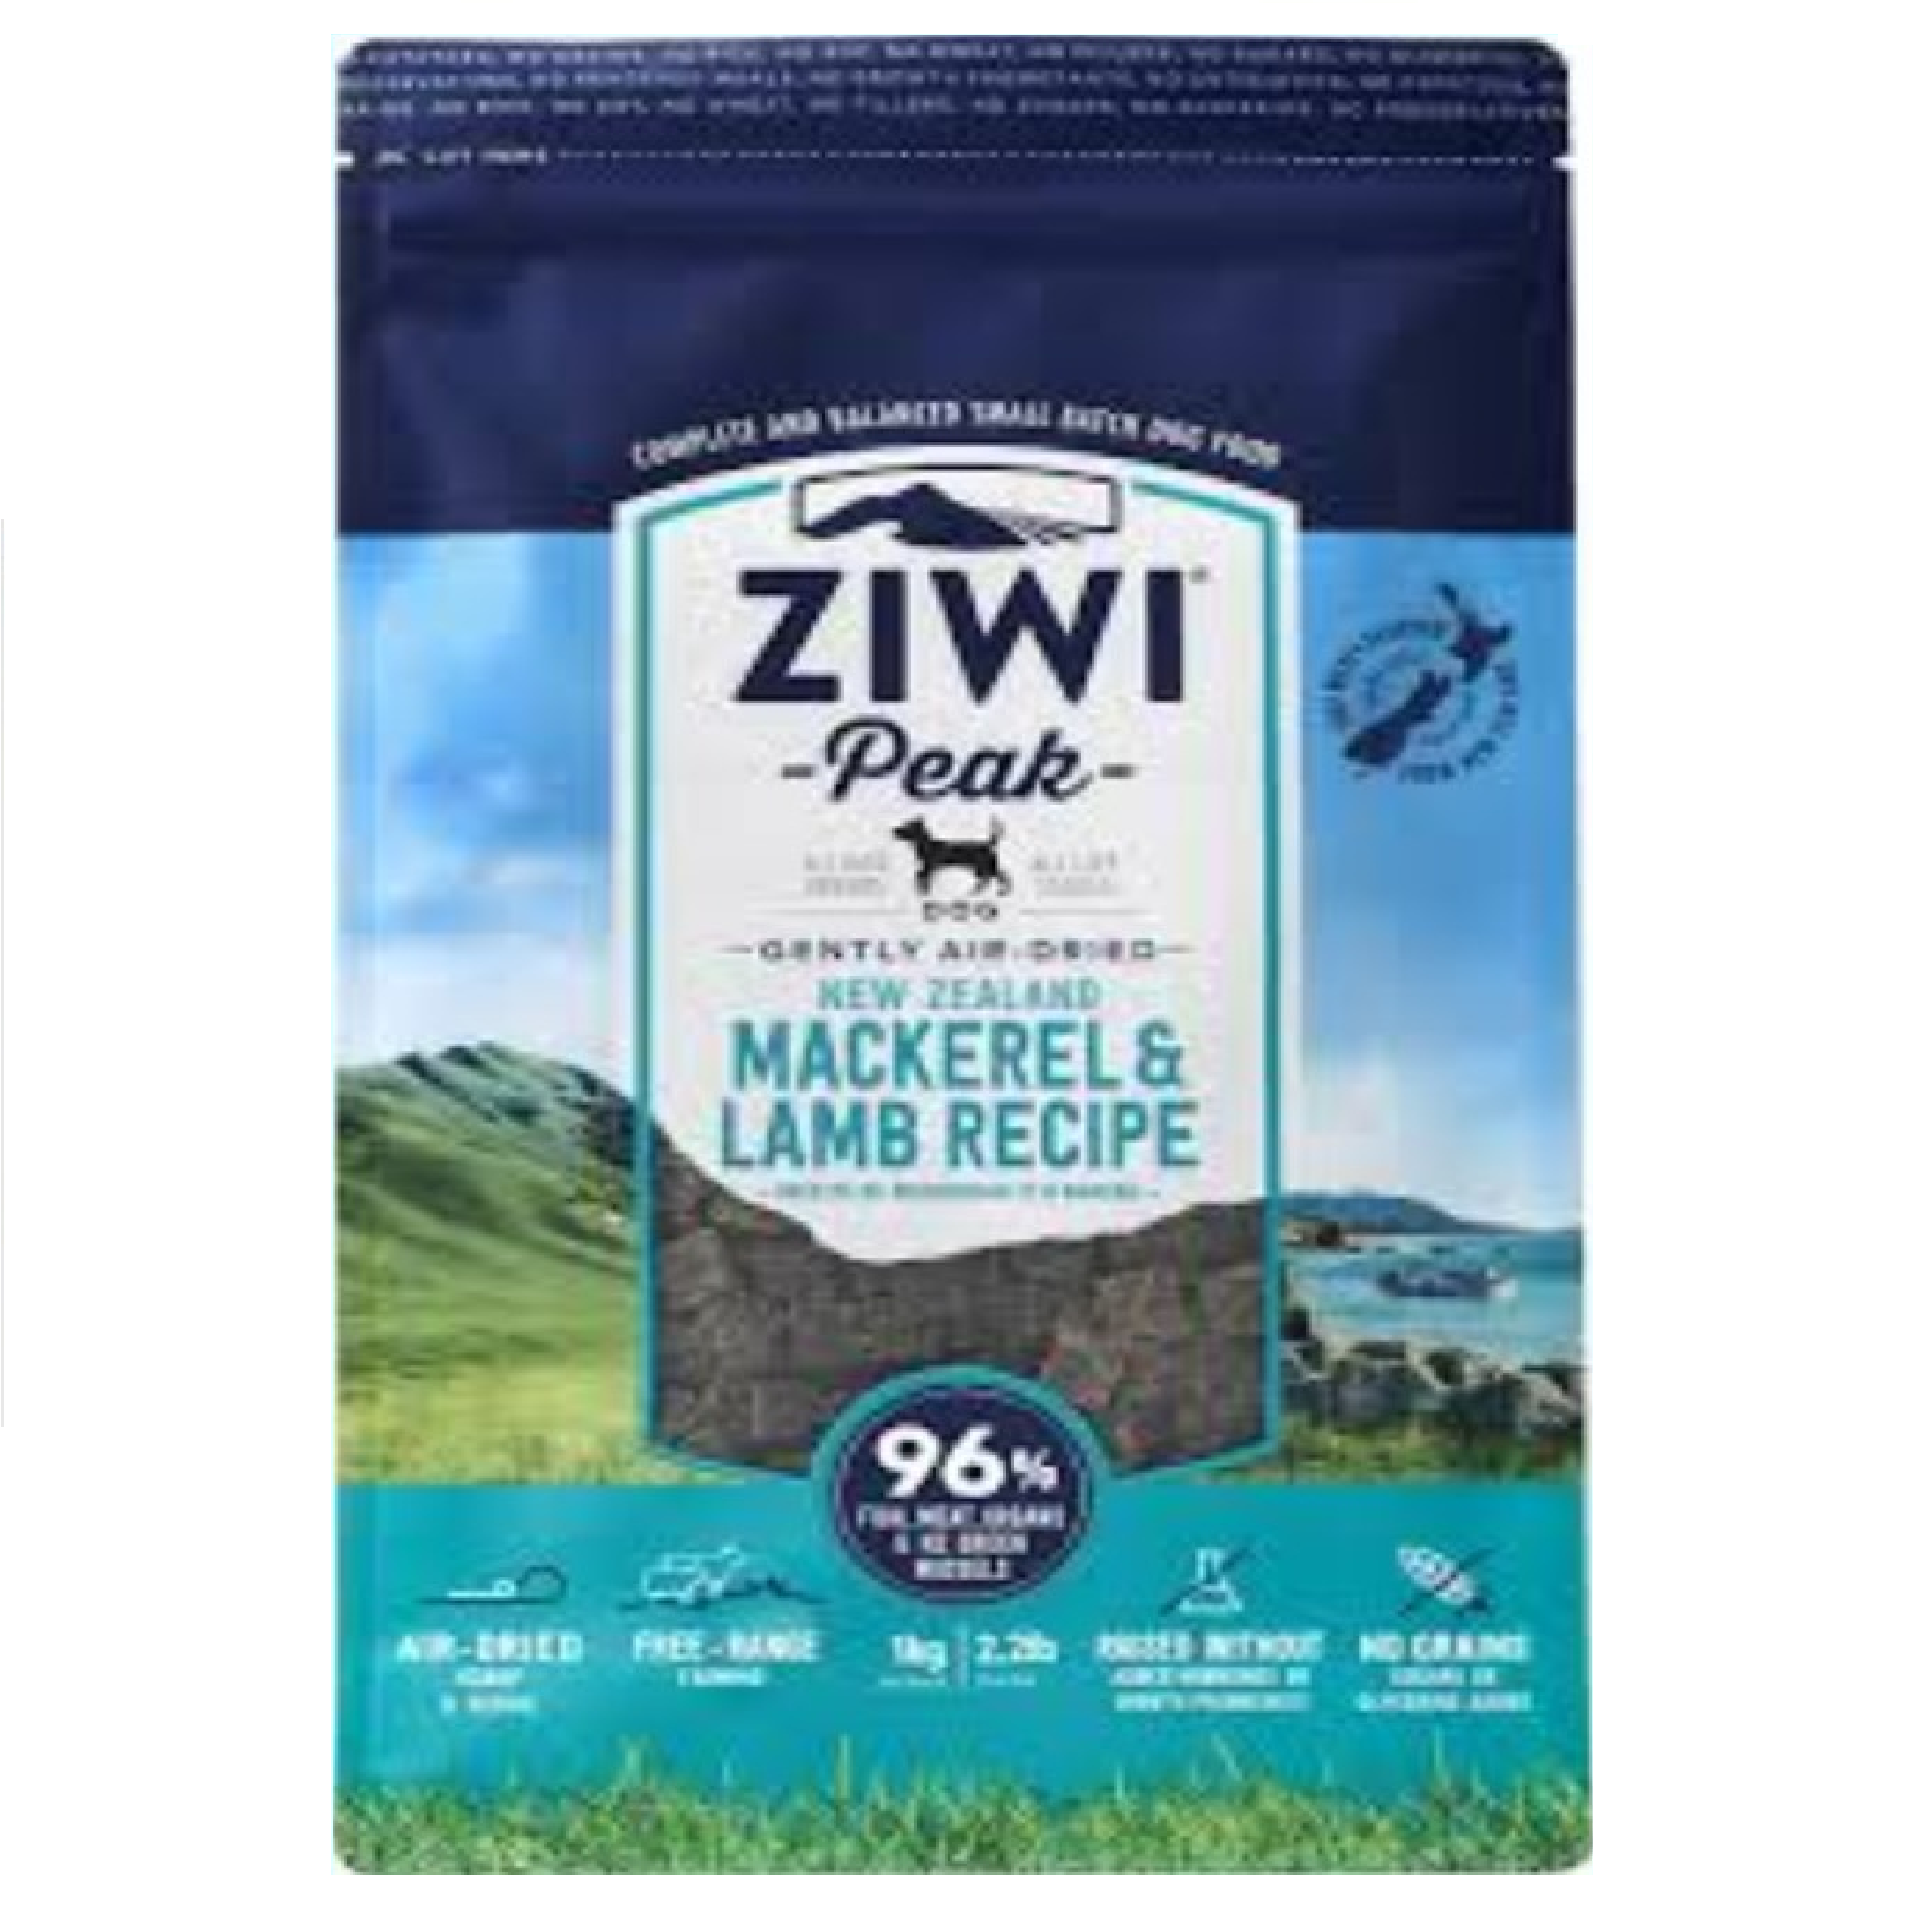 Ziwi Peak Dog Air-Dried Mackerel & Lamb